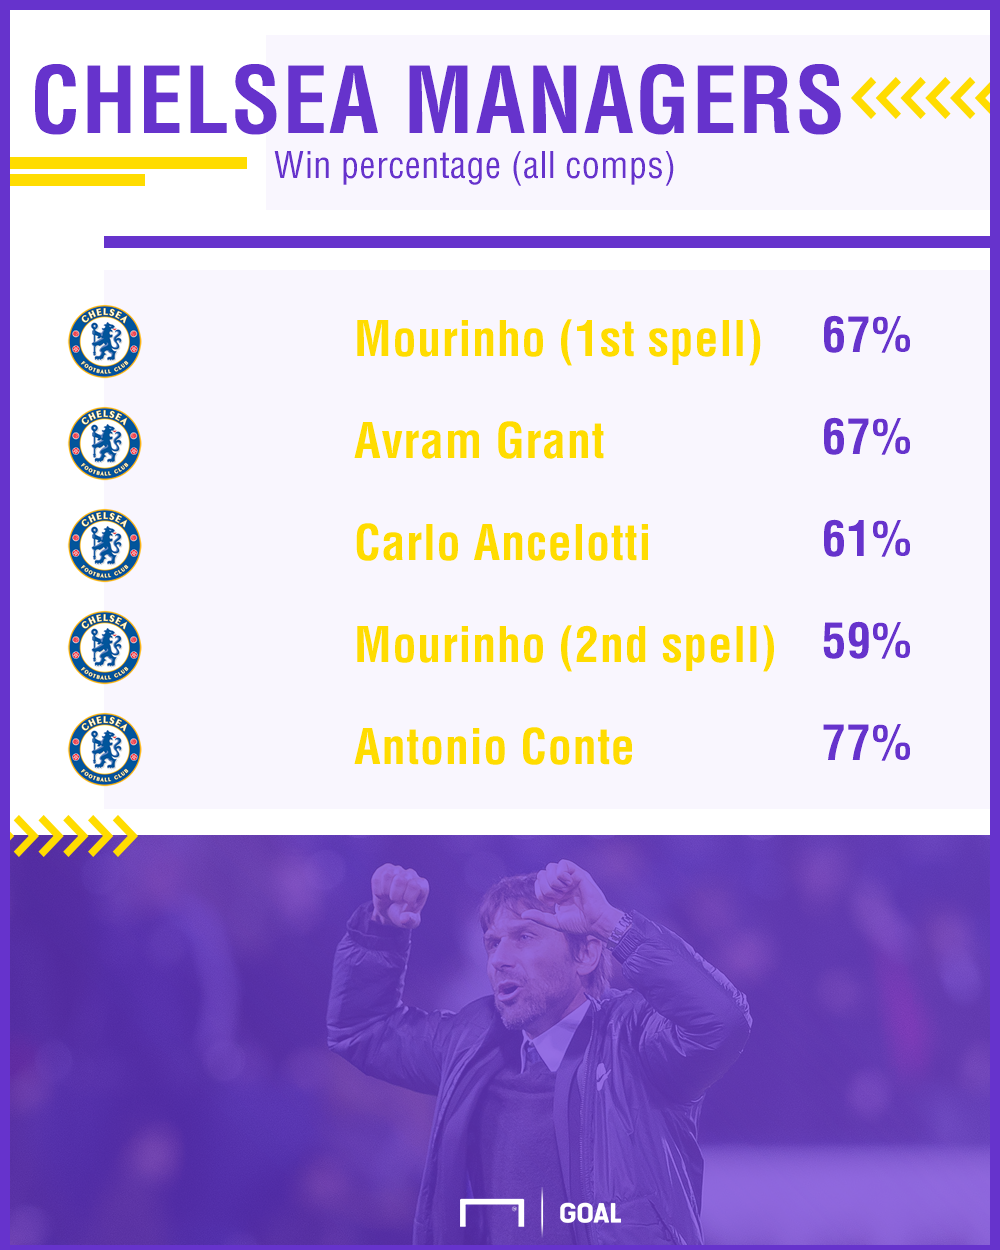 Chelsea managers win percentage